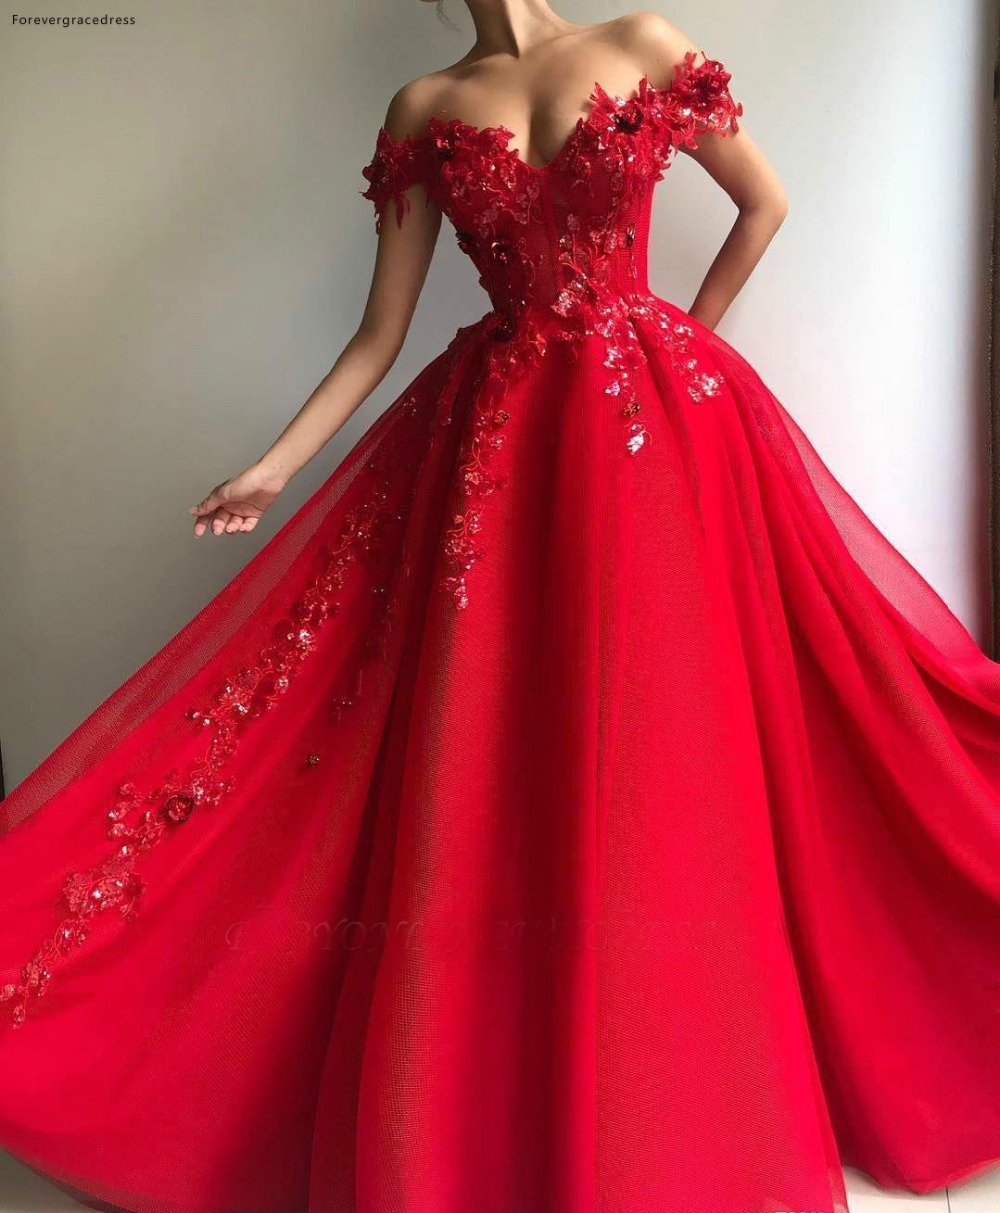 Elegant Red Flora Off Shoulder Evening Dresses A Line Appliques Sequins Long Evening Gowns Arabic Vestidos Prom Wears BC1458 132 (3)